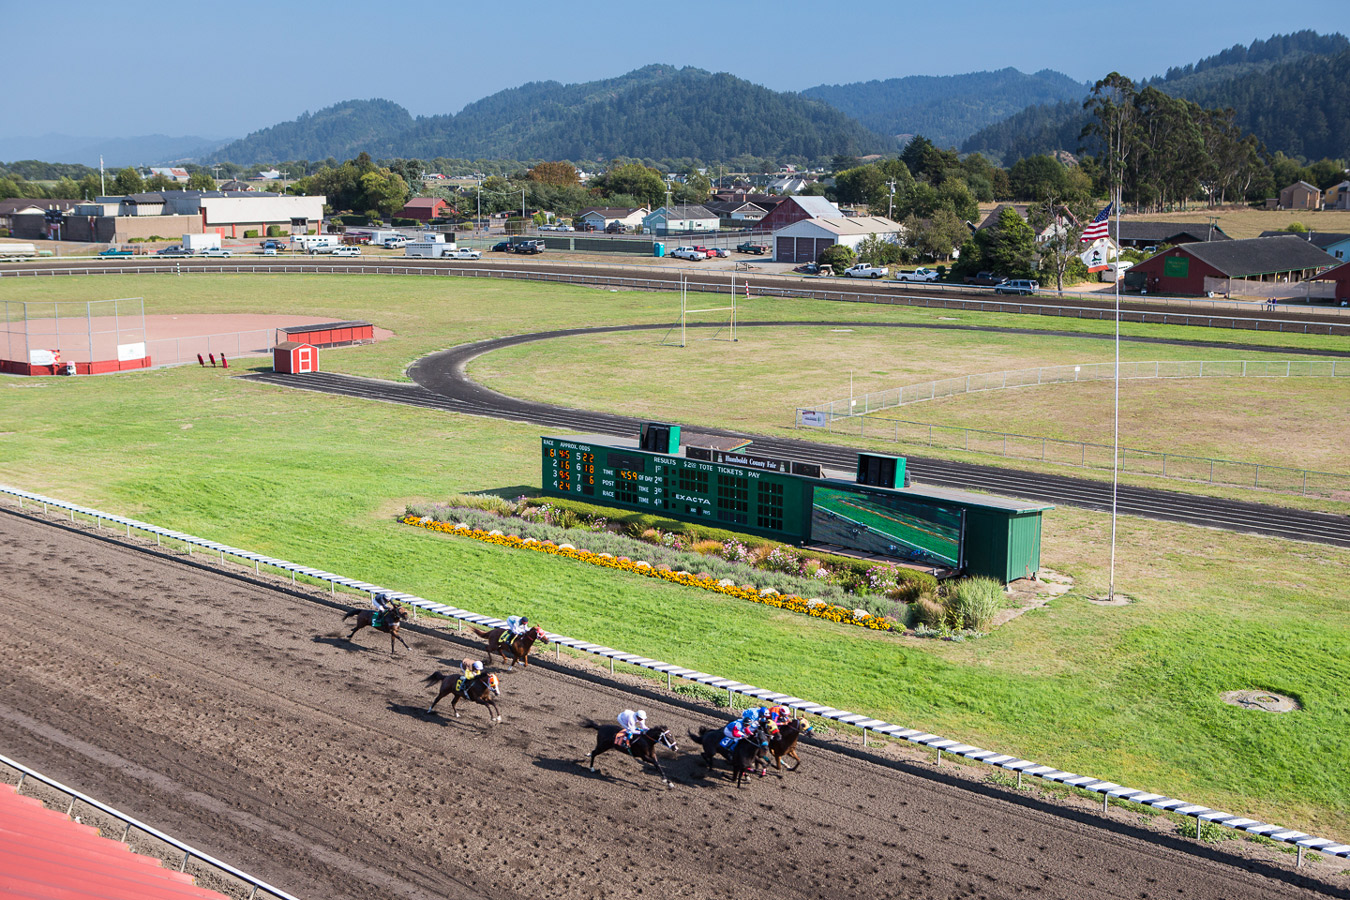 banner image is of Ferndale, CA Race Horse Track